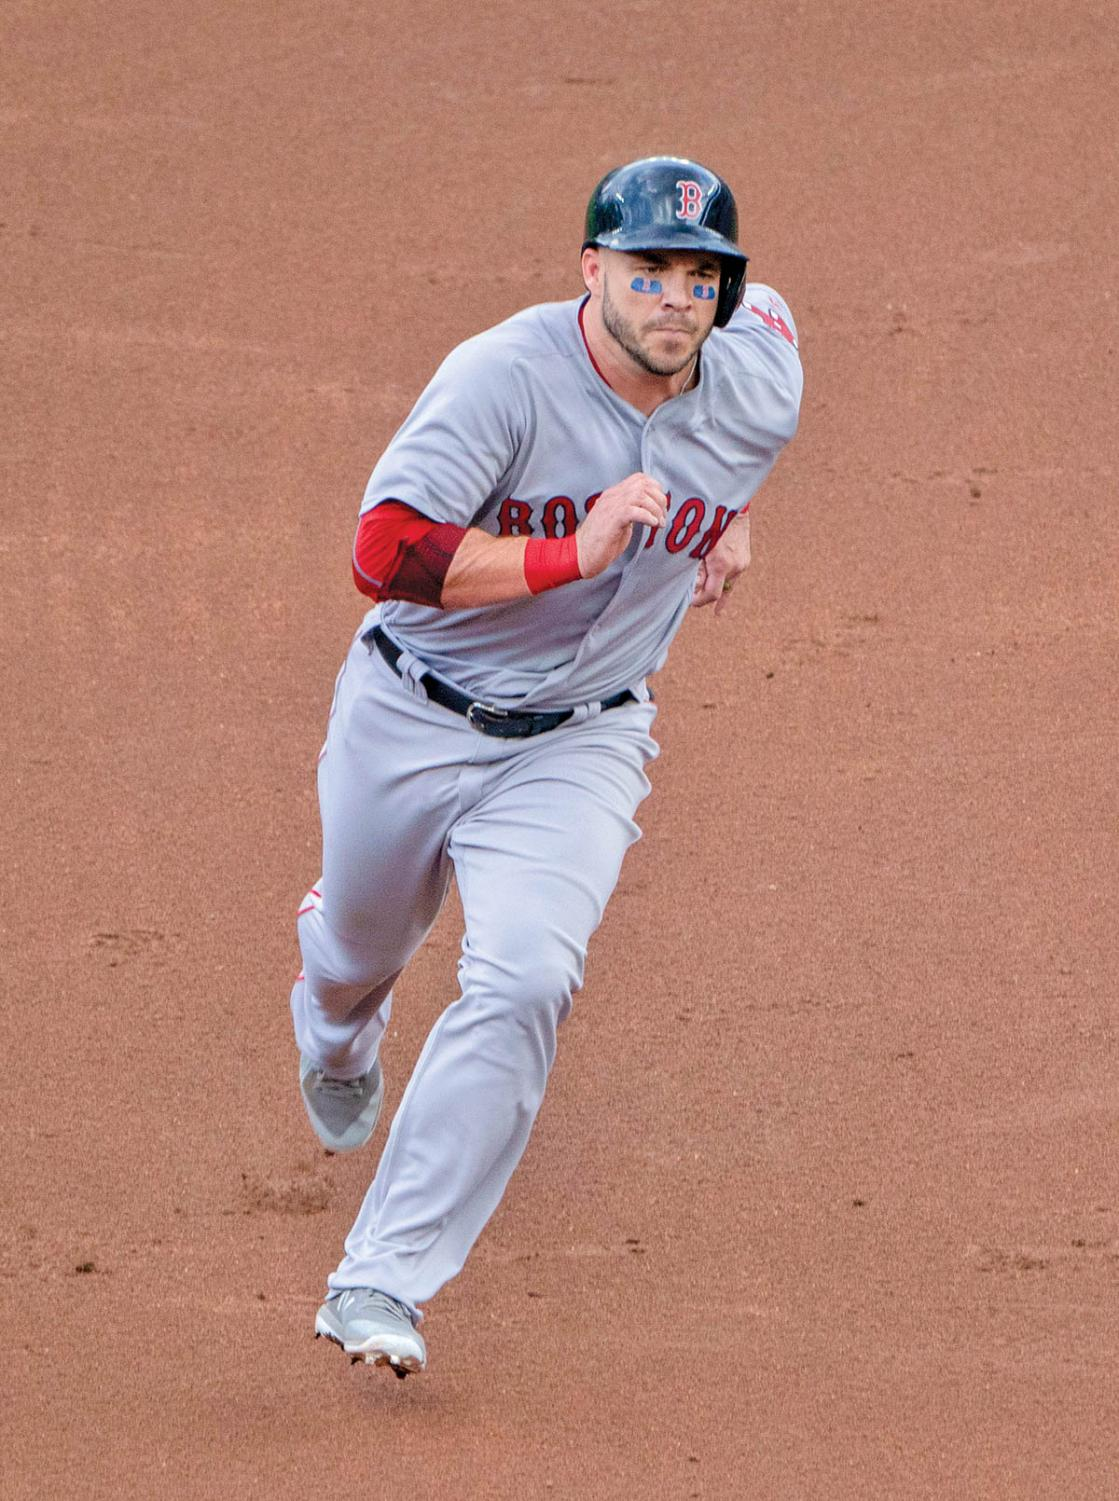 Steve Pearce earned World Series MVP after stellar offensive performance.